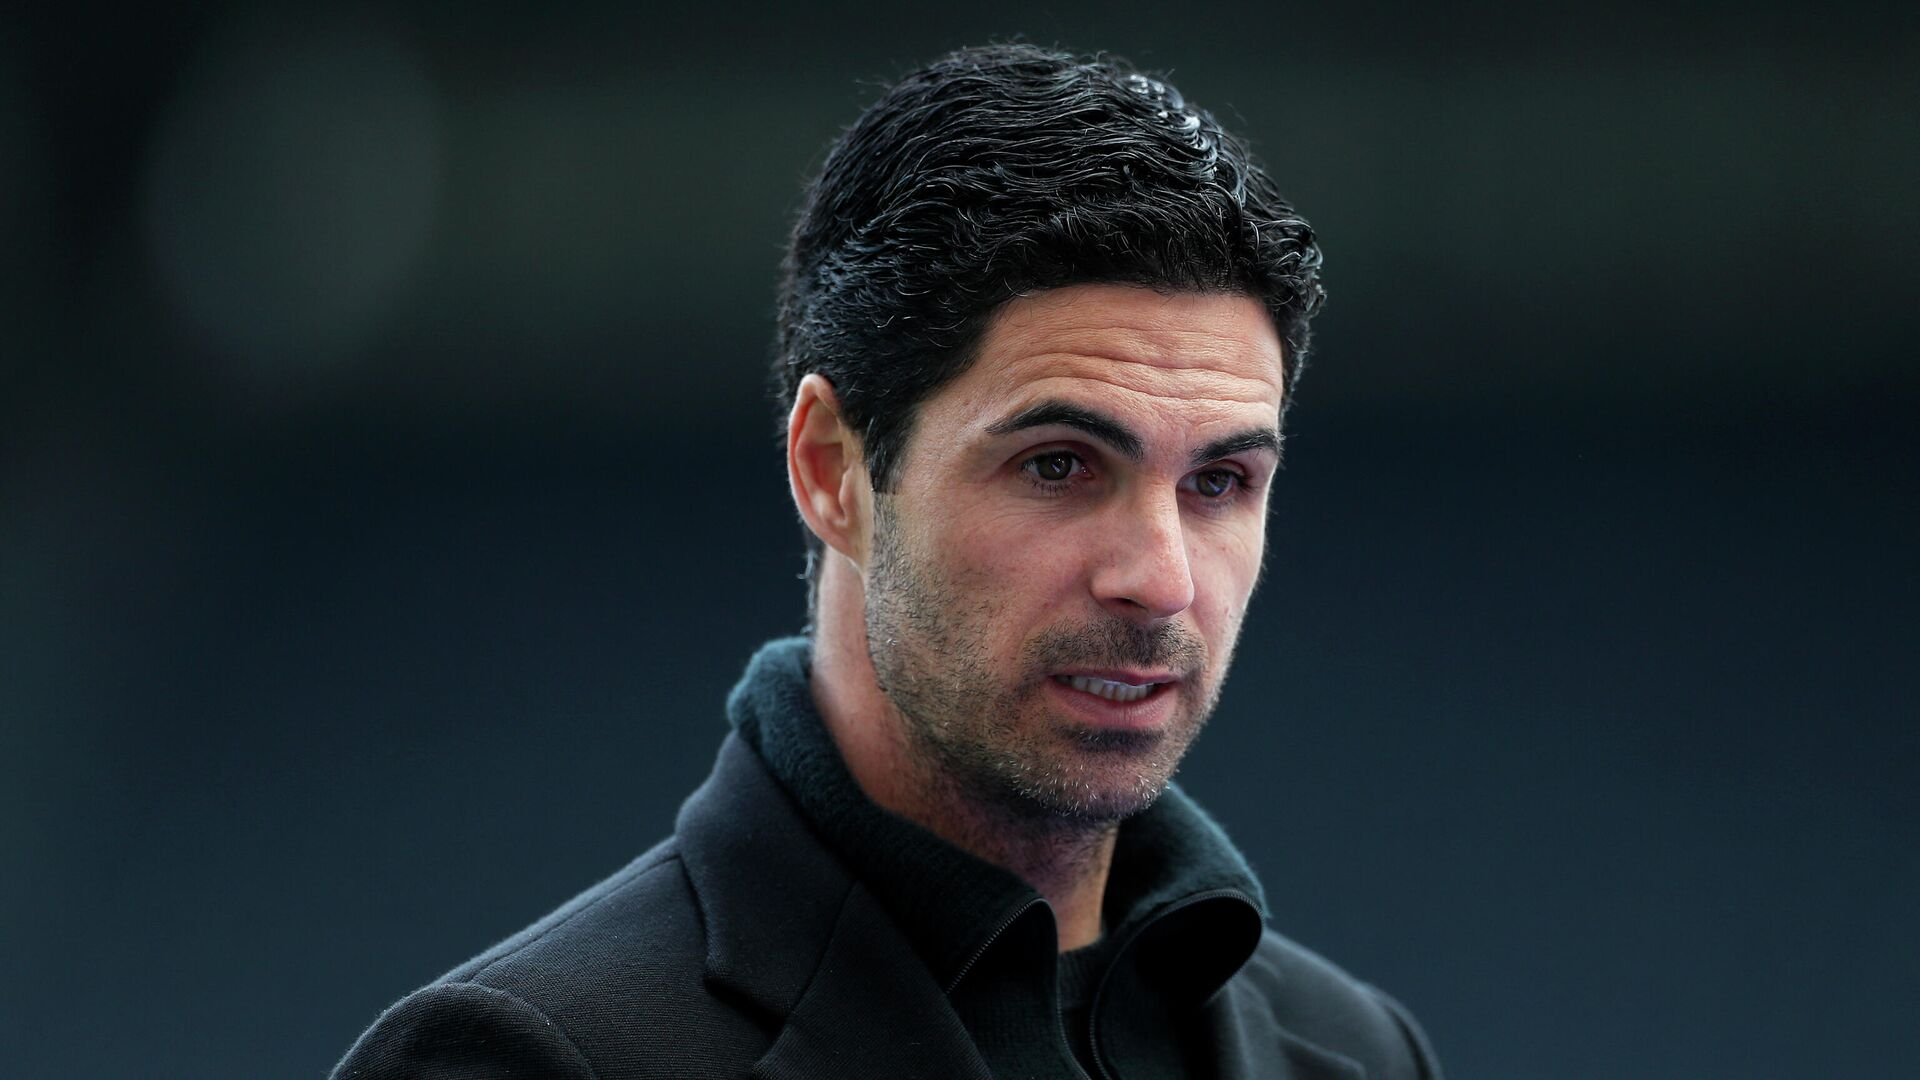 Arsenal's Spanish manager Mikel Arteta speaks to the media after the English Premier League football match between Newcastle United and Arsenal at St James' Park in Newcastle-upon-Tyne, north east England on May 2, 2021. (Photo by LEE SMITH / POOL / AFP) / RESTRICTED TO EDITORIAL USE. No use with unauthorized audio, video, data, fixture lists, club/league logos or 'live' services. Online in-match use limited to 120 images. An additional 40 images may be used in extra time. No video emulation. Social media in-match use limited to 120 images. An additional 40 images may be used in extra time. No use in betting publications, games or single club/league/player publications. /  - РИА Новости, 1920, 07.05.2021